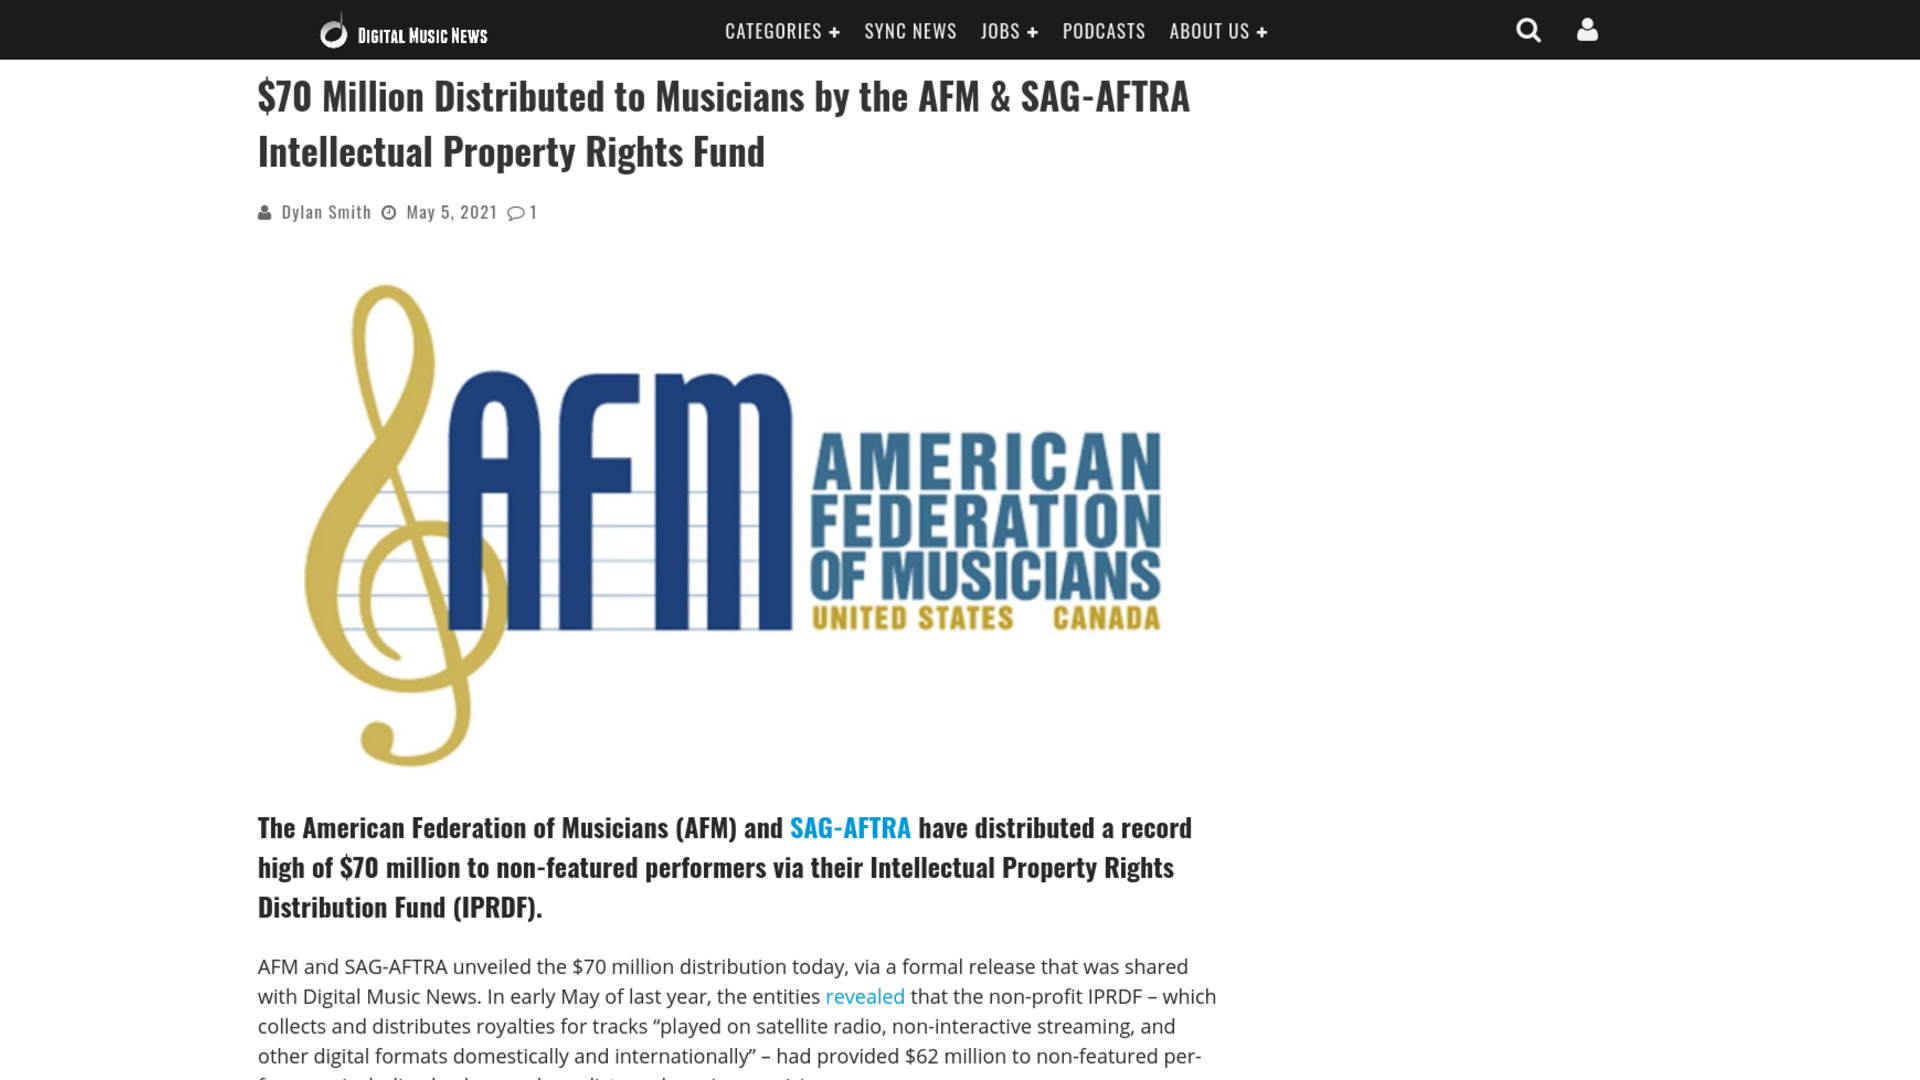 Fairness Rocks News $70 Million Distributed to Musicians by the AFM & SAG-AFTRA Intellectual Property Rights Fund